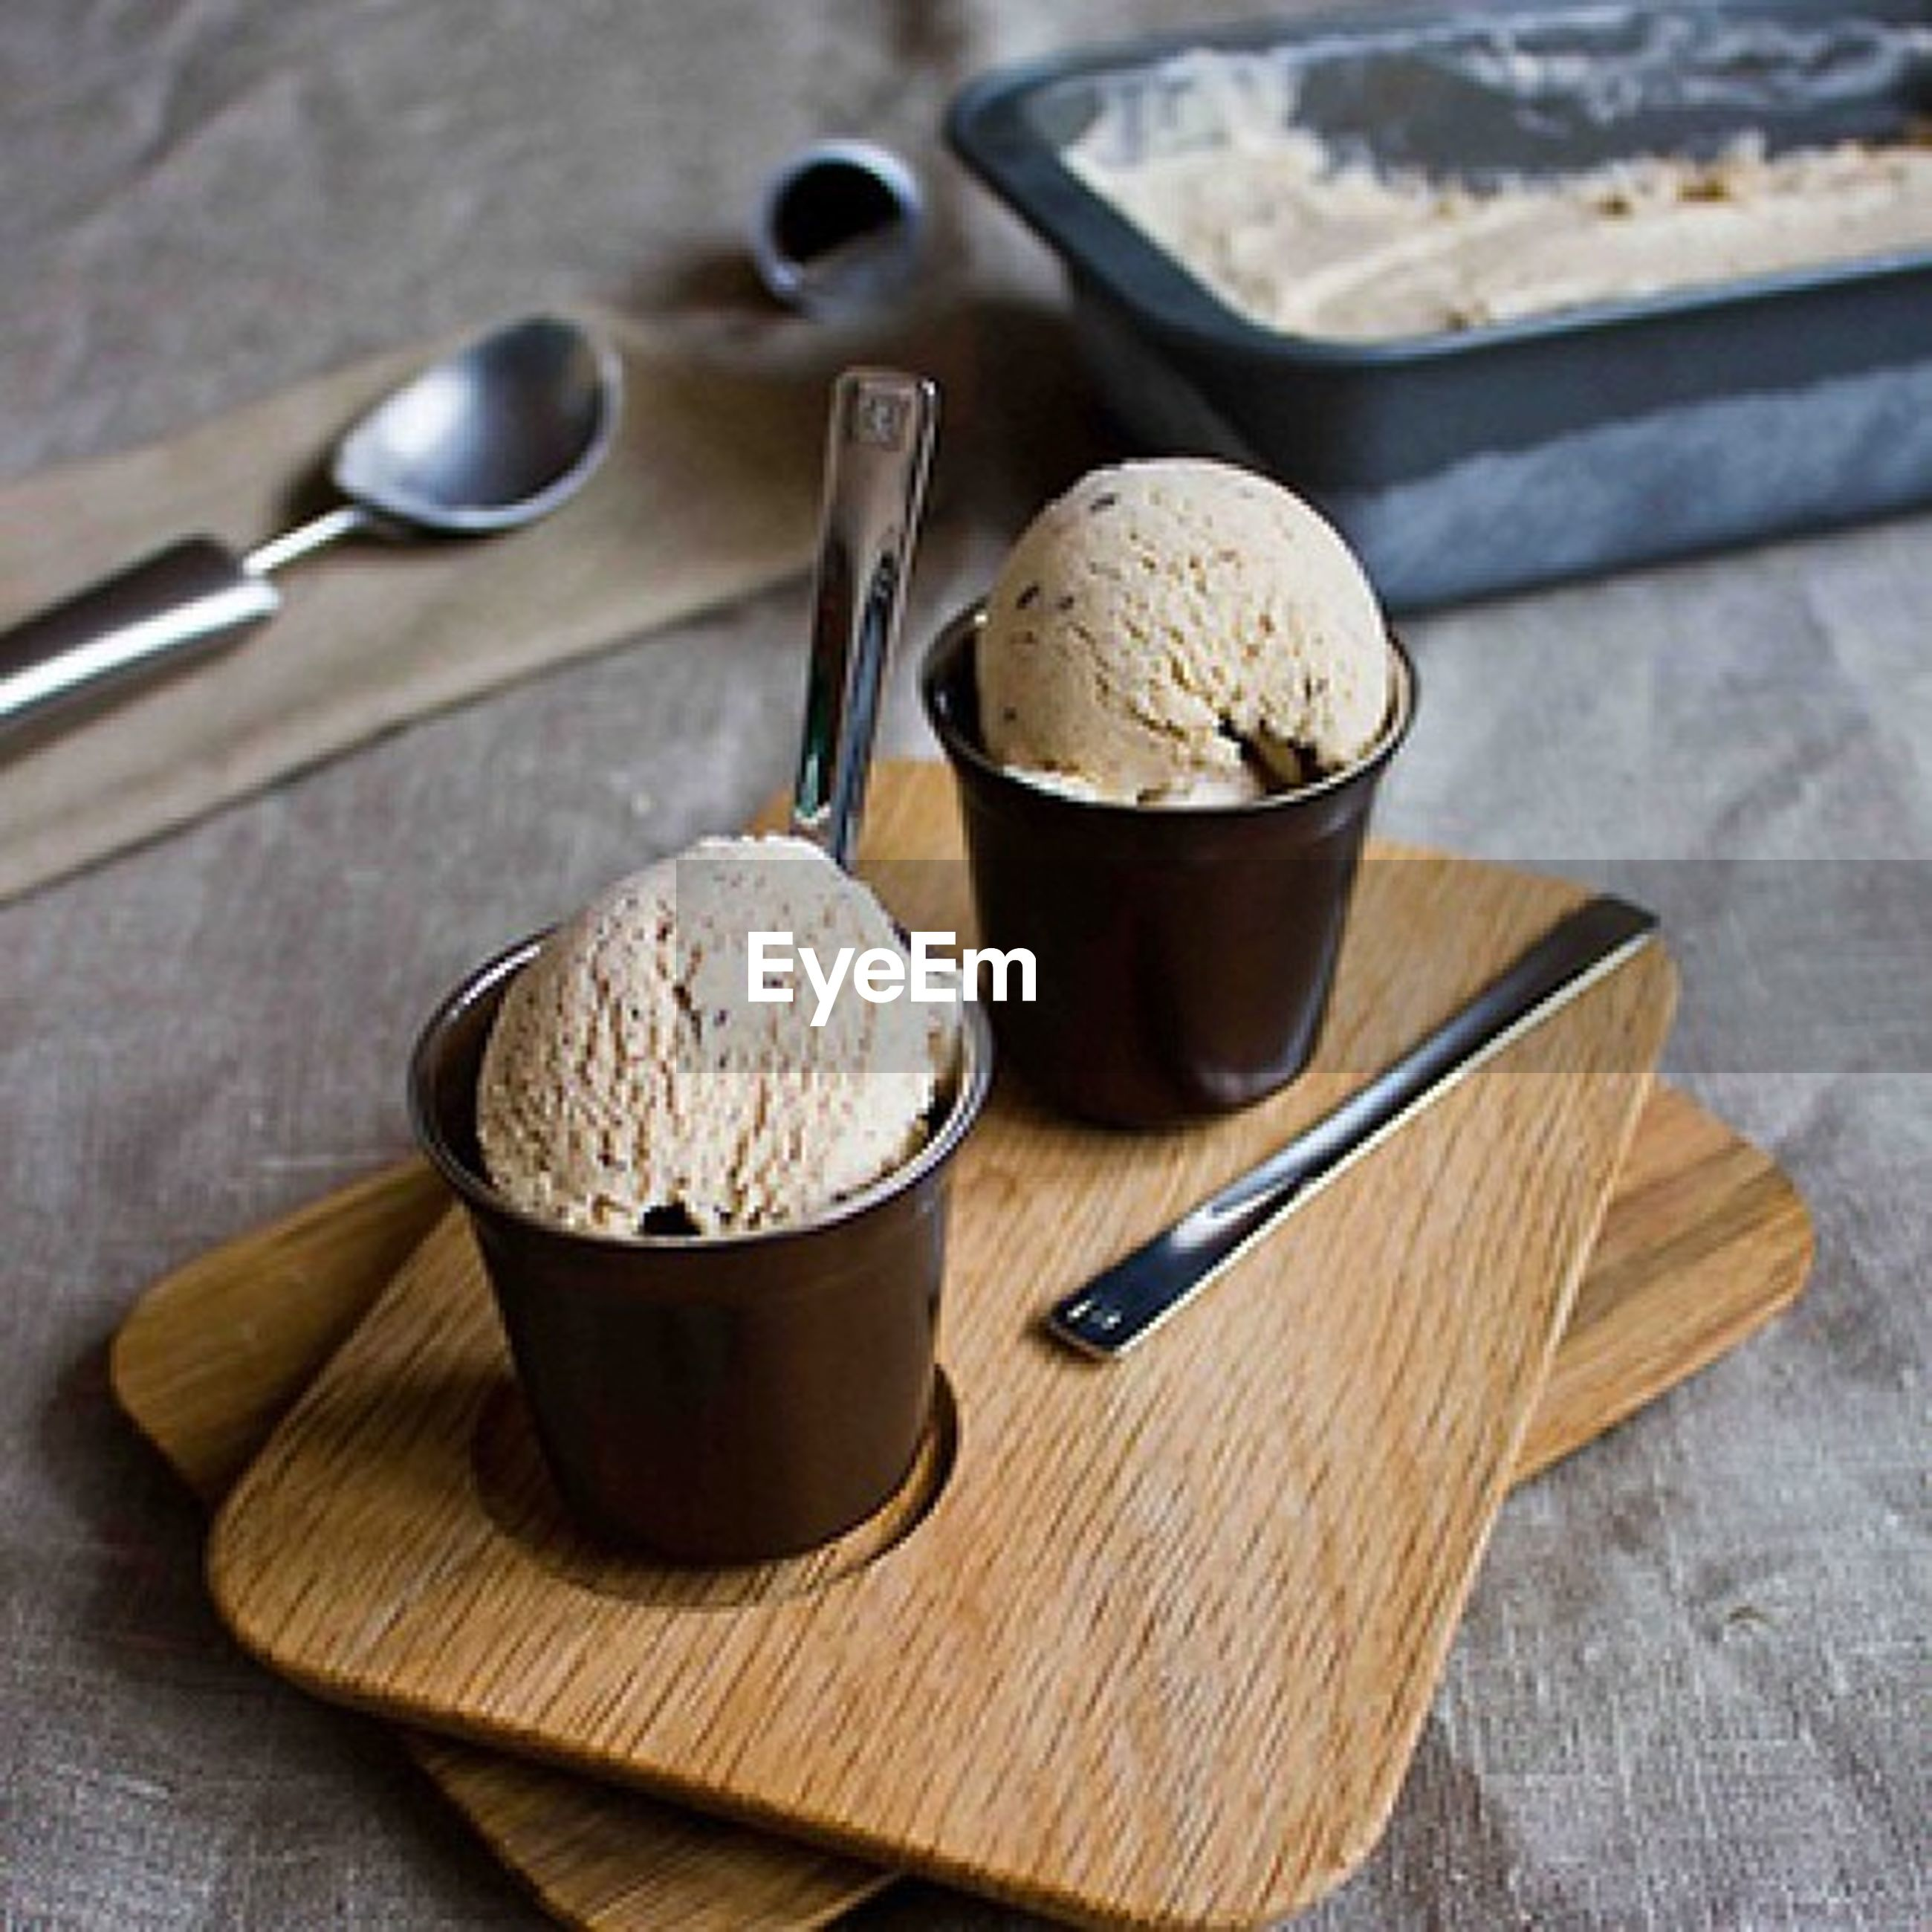 food and drink, drink, freshness, table, indoors, coffee cup, still life, refreshment, coffee - drink, spoon, saucer, food, coffee, close-up, breakfast, cup, healthy eating, high angle view, beverage, wood - material